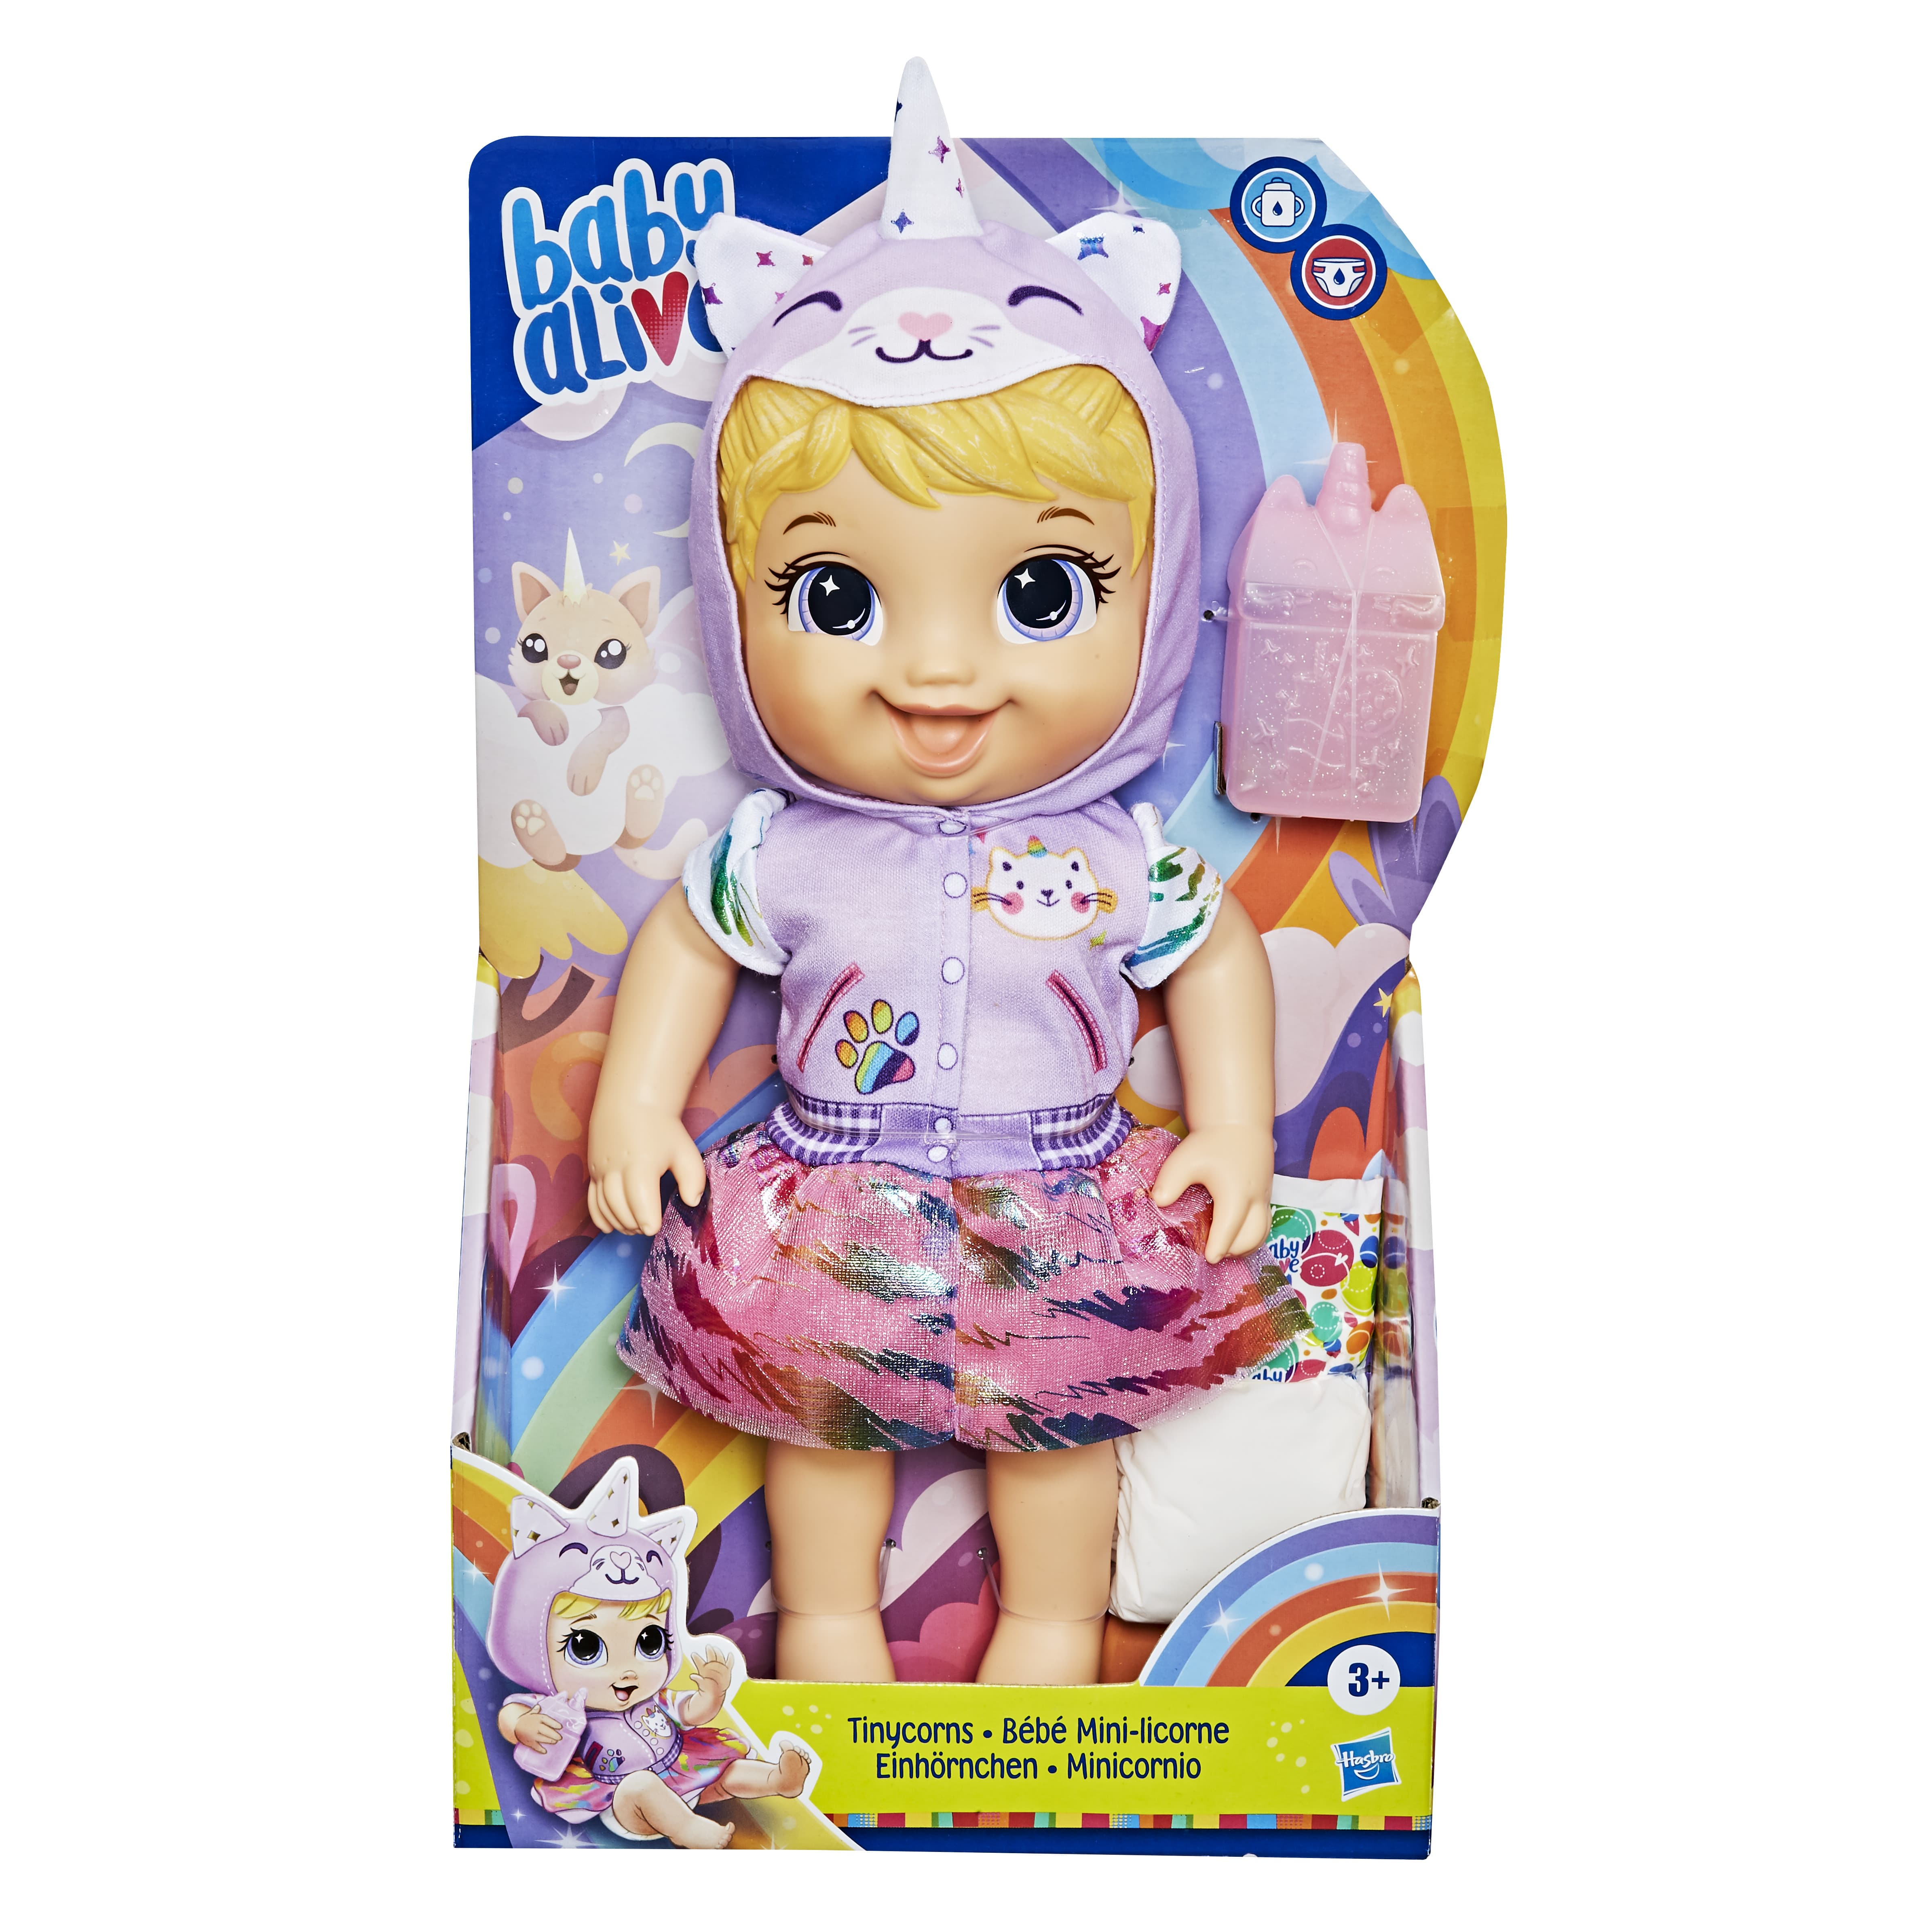 E9166 BABY ALIVE TINYCORN 2 In Pack.